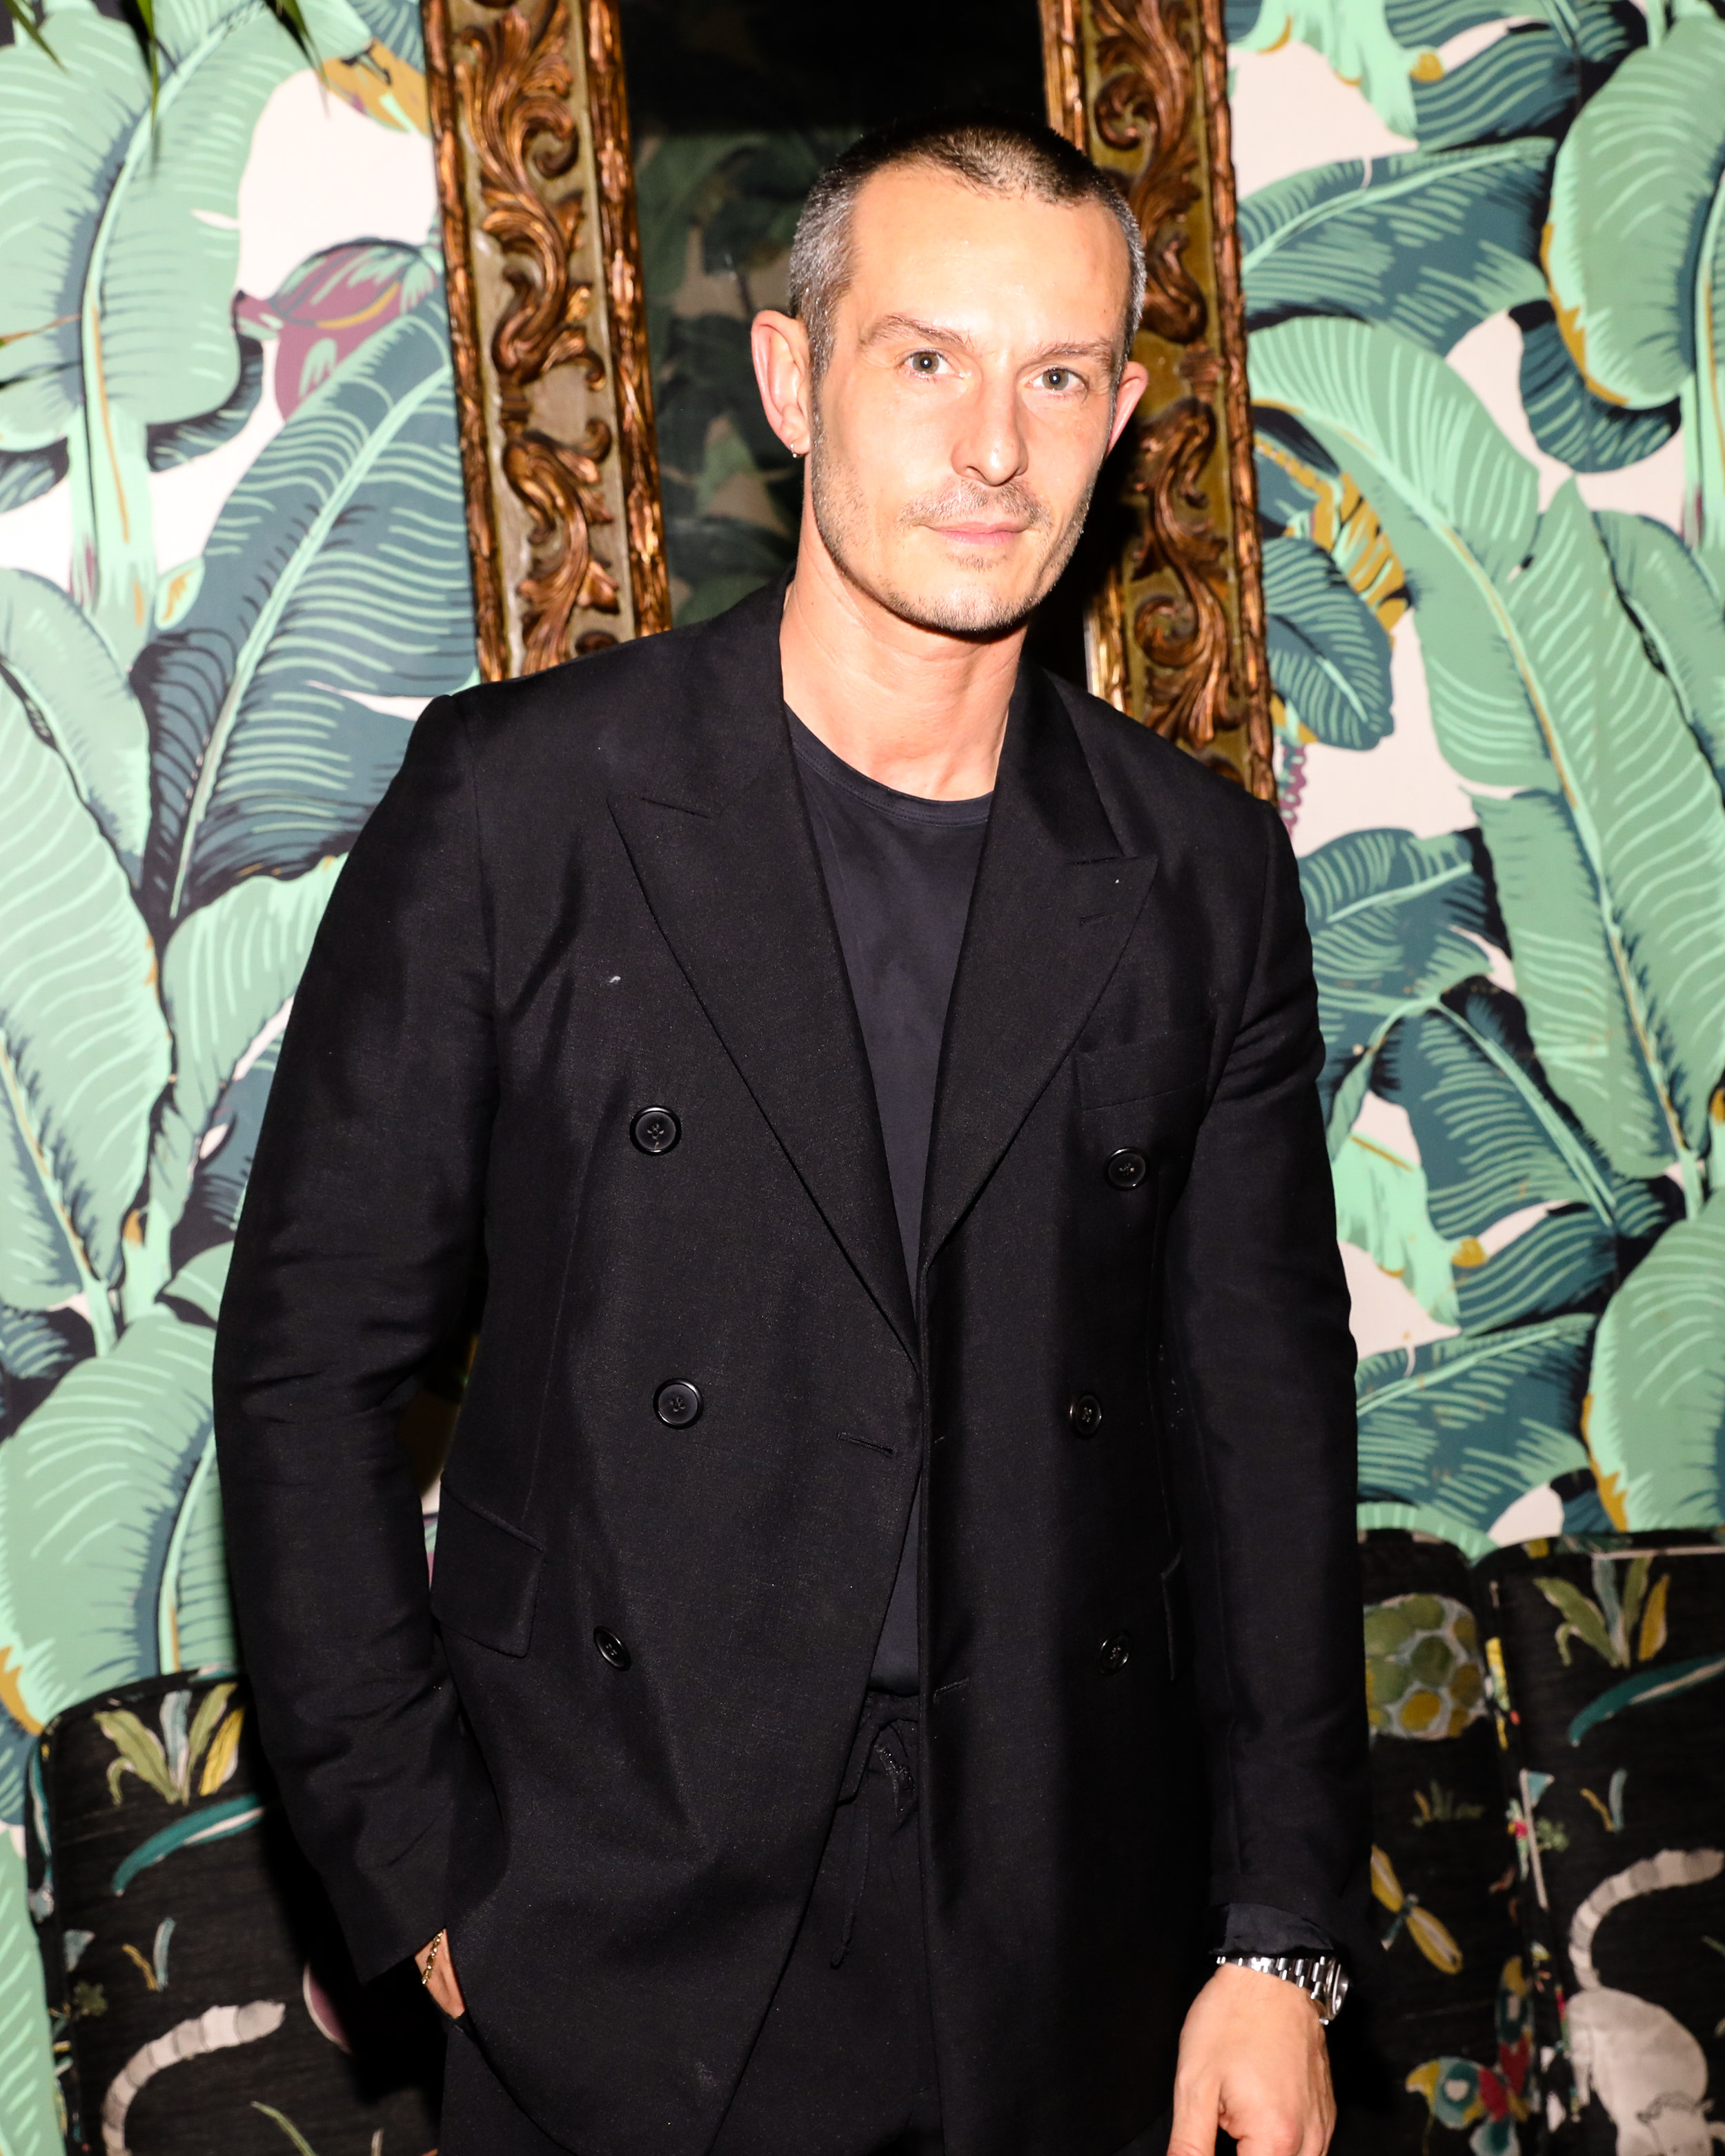 Jonathan Saunders attends The Opening of The Dr. Barbara Sturm Zero Bond Boutique & Spa on Thursday, May 2, 2019. Photographed by Neil Rasmus/BFA.